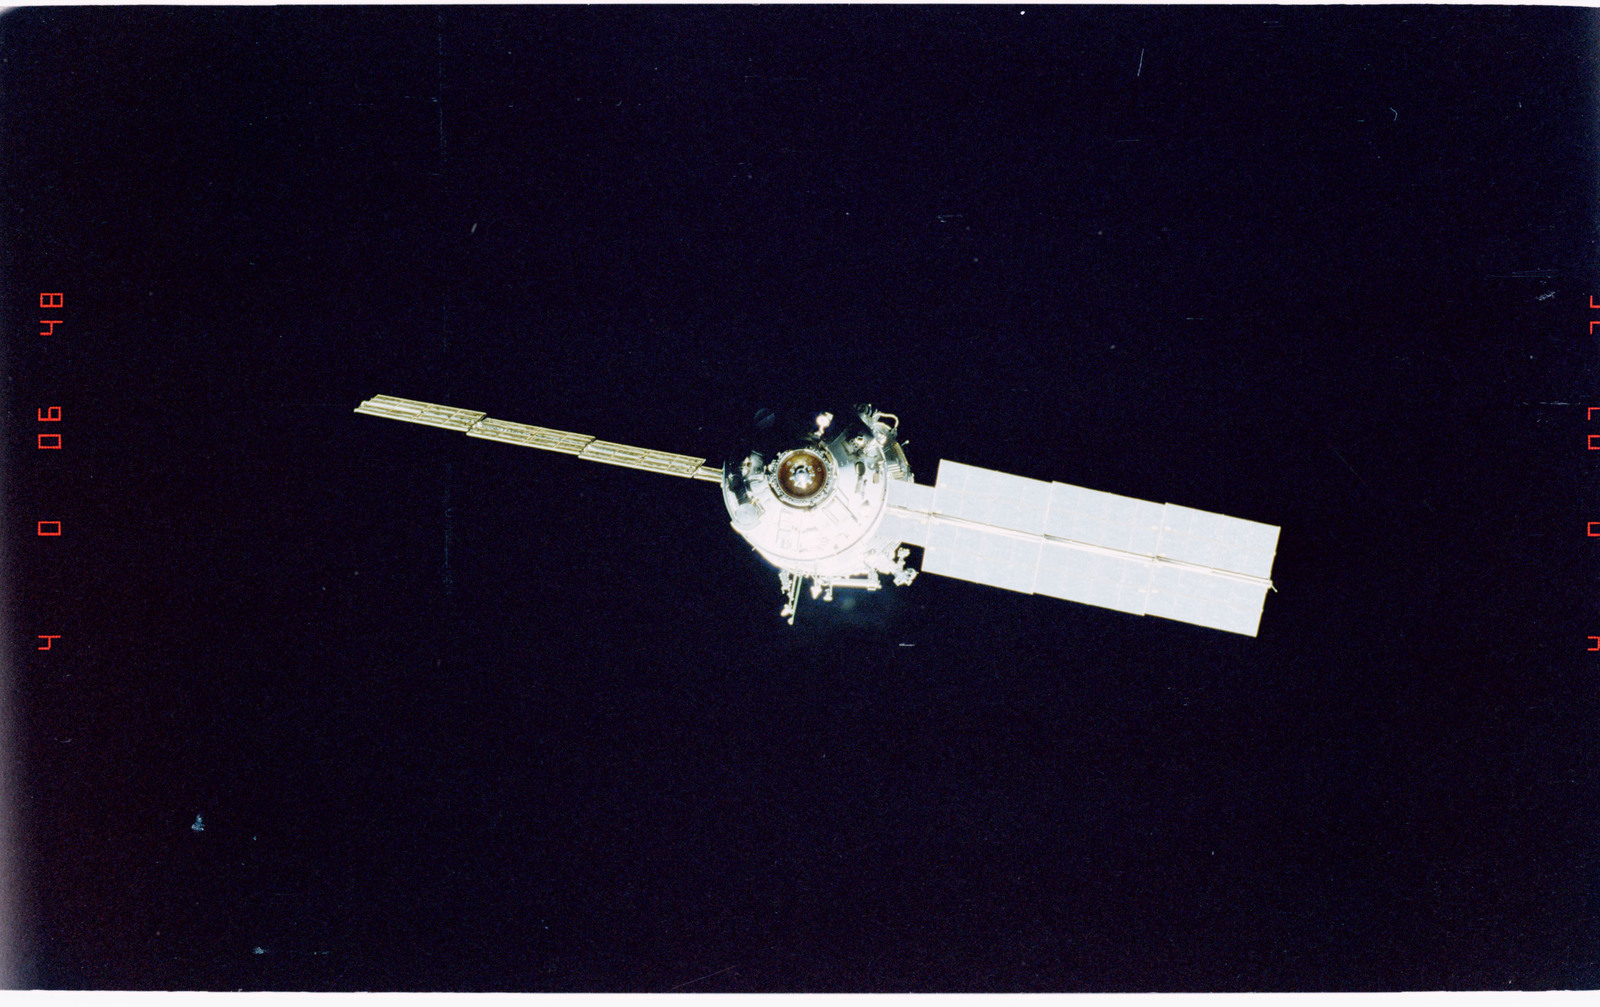 STS096-405-031 - STS-096 - End-on view of the ISS during fly-around